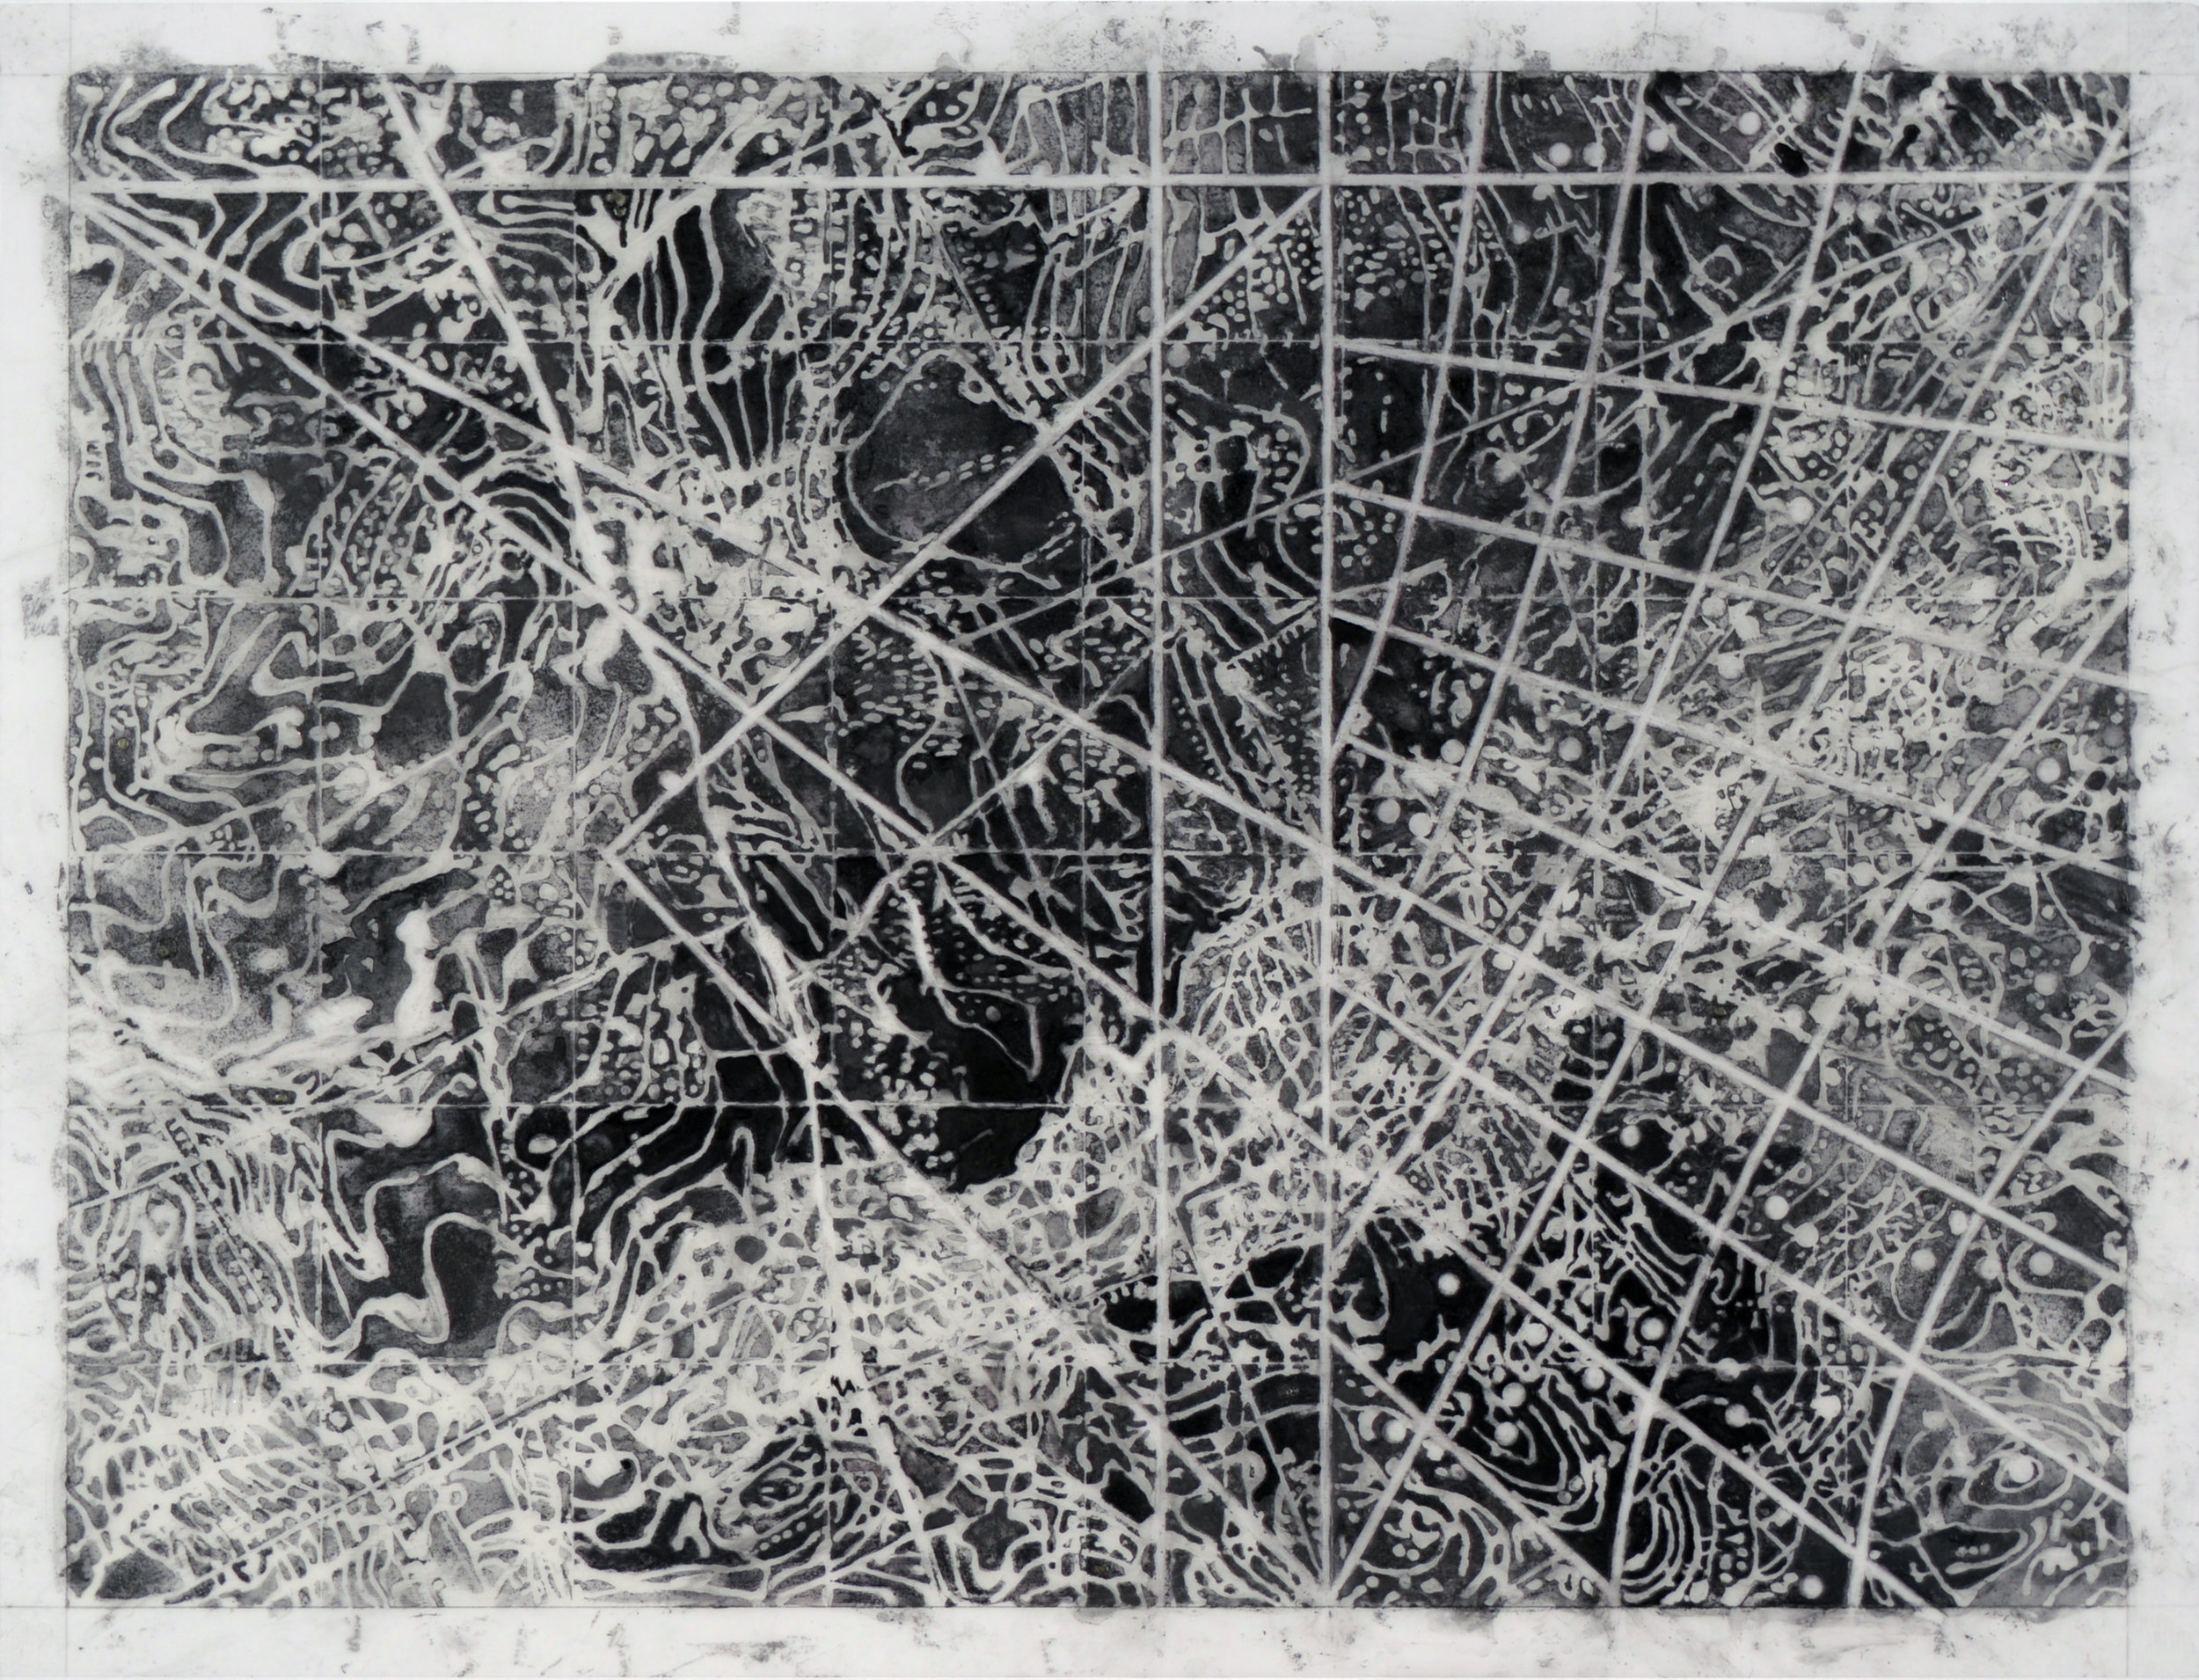 Navigation, 2015 Graphite, mixed media on Dura-Lar 17.5H x 23W inches unframed 3.5H x 28.63 inches framed